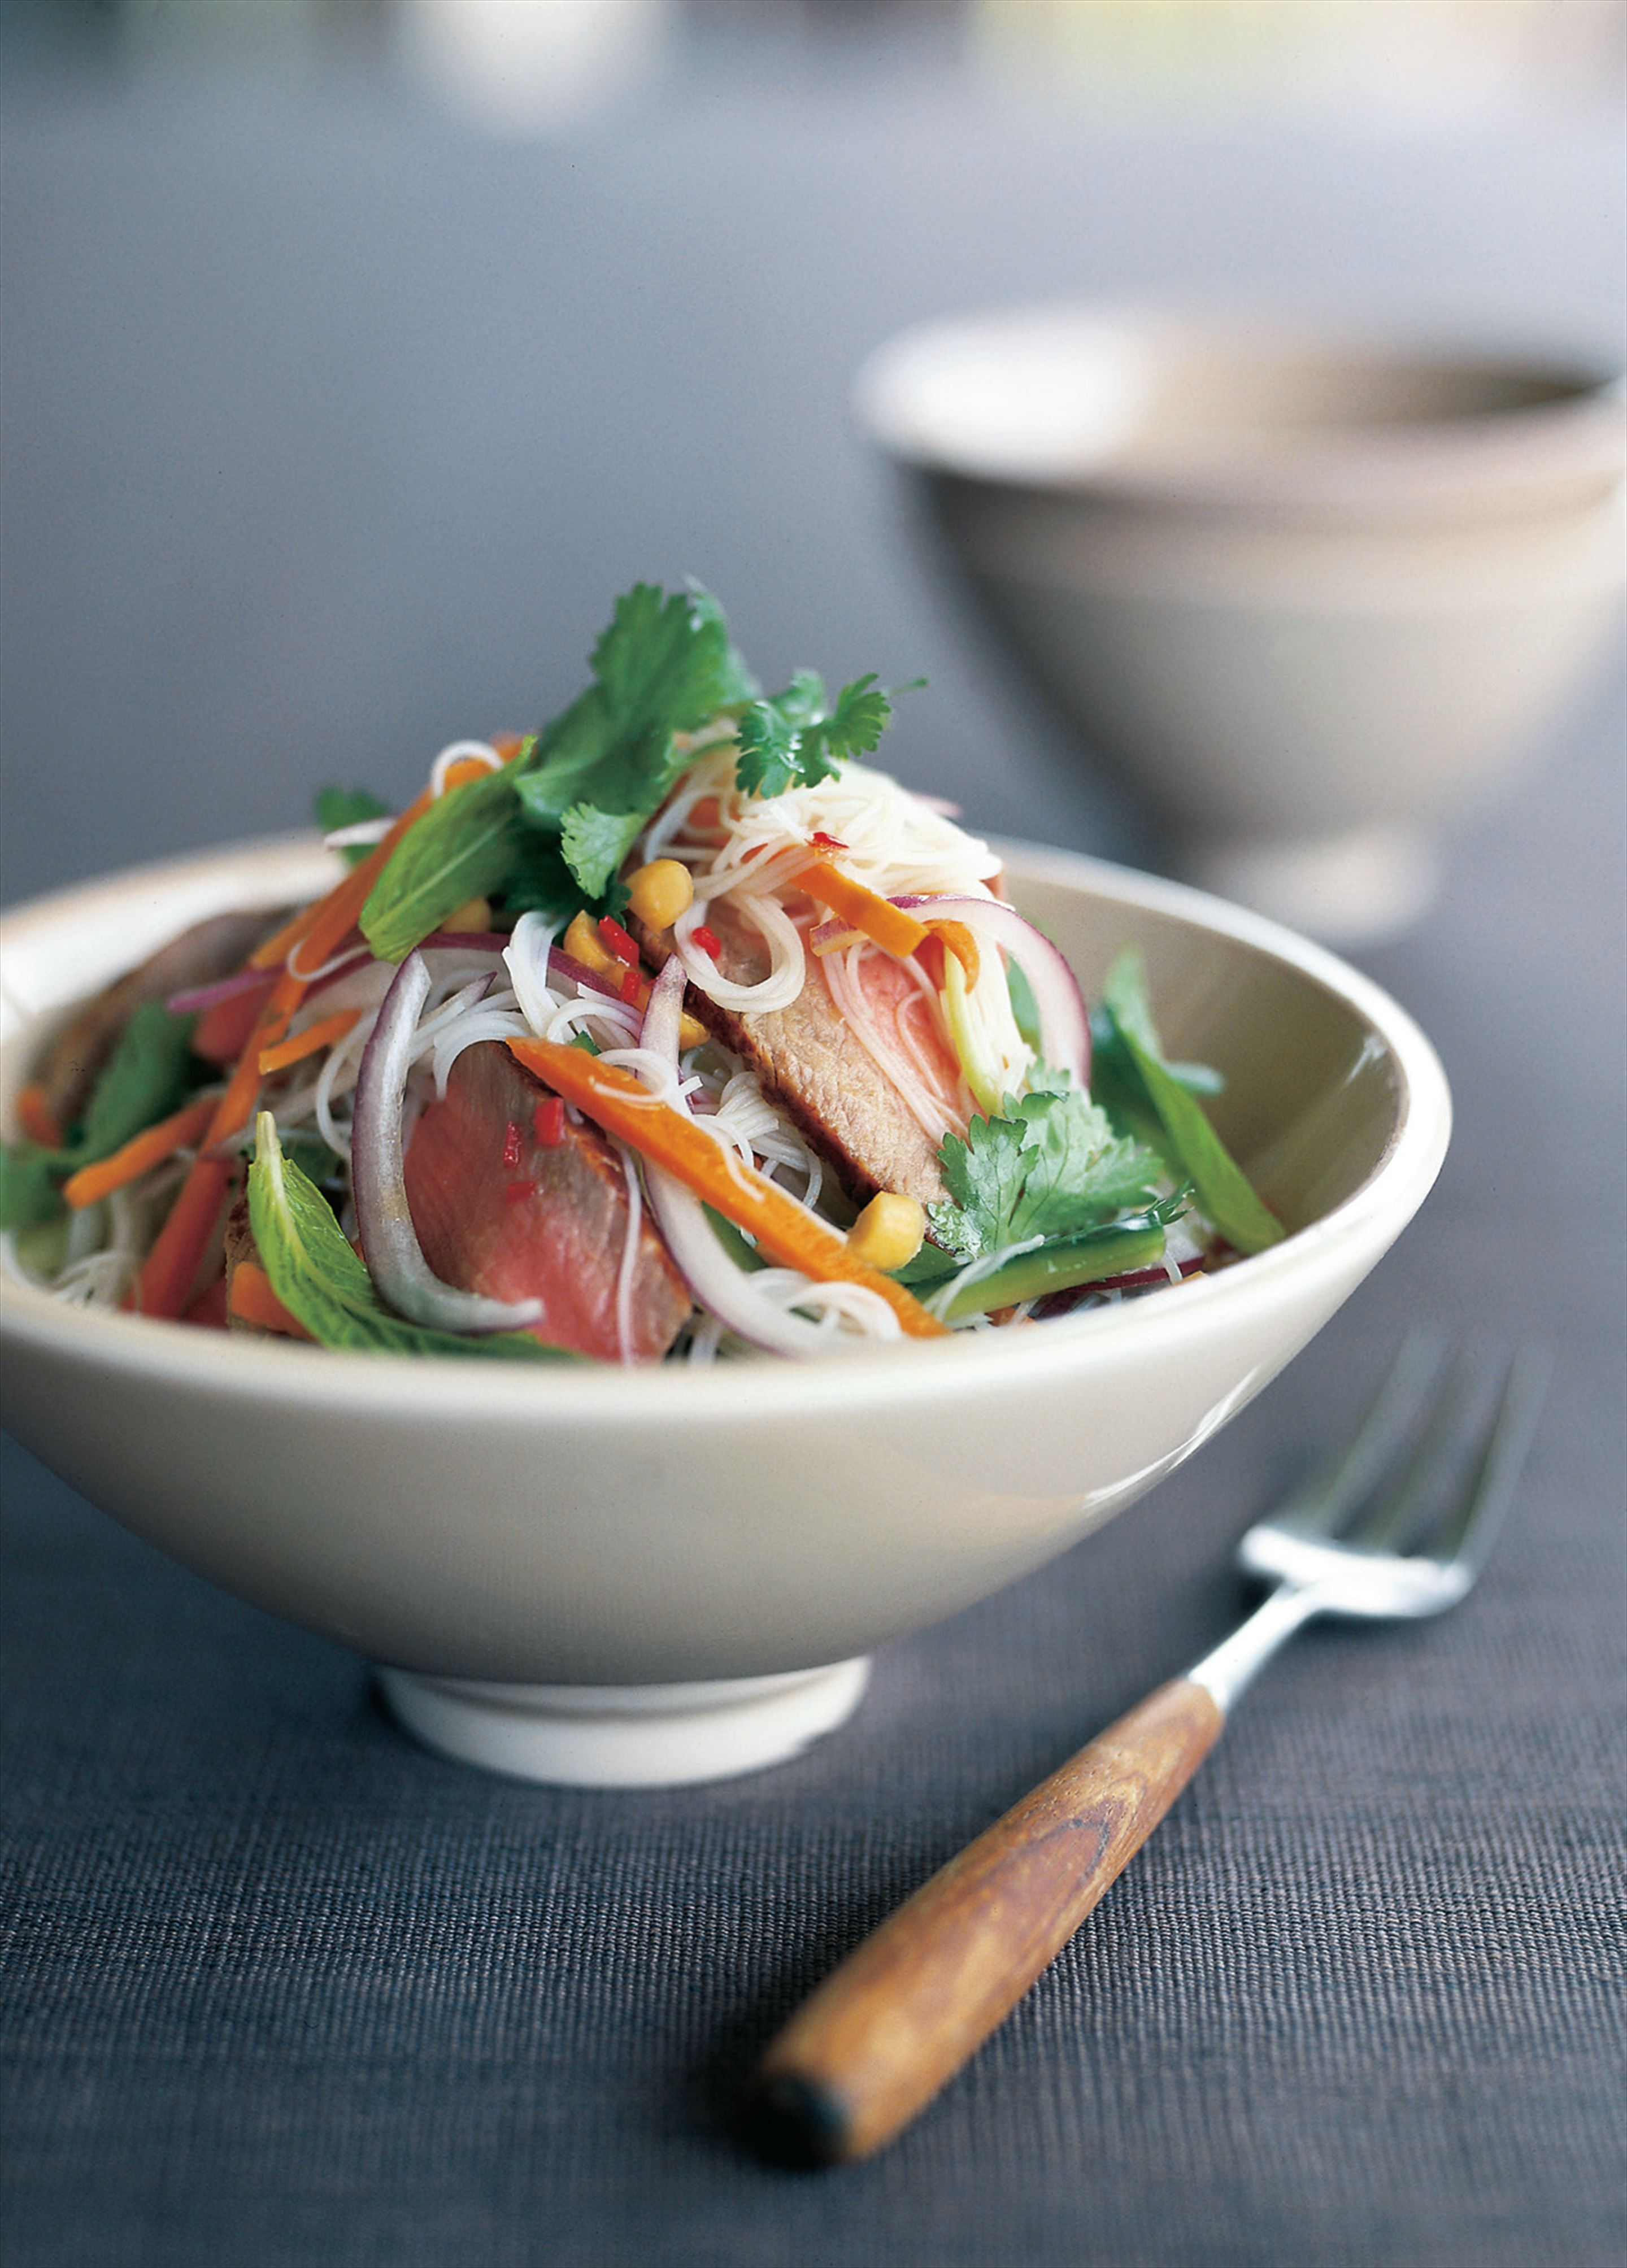 Beef and vermicelli noodle salad